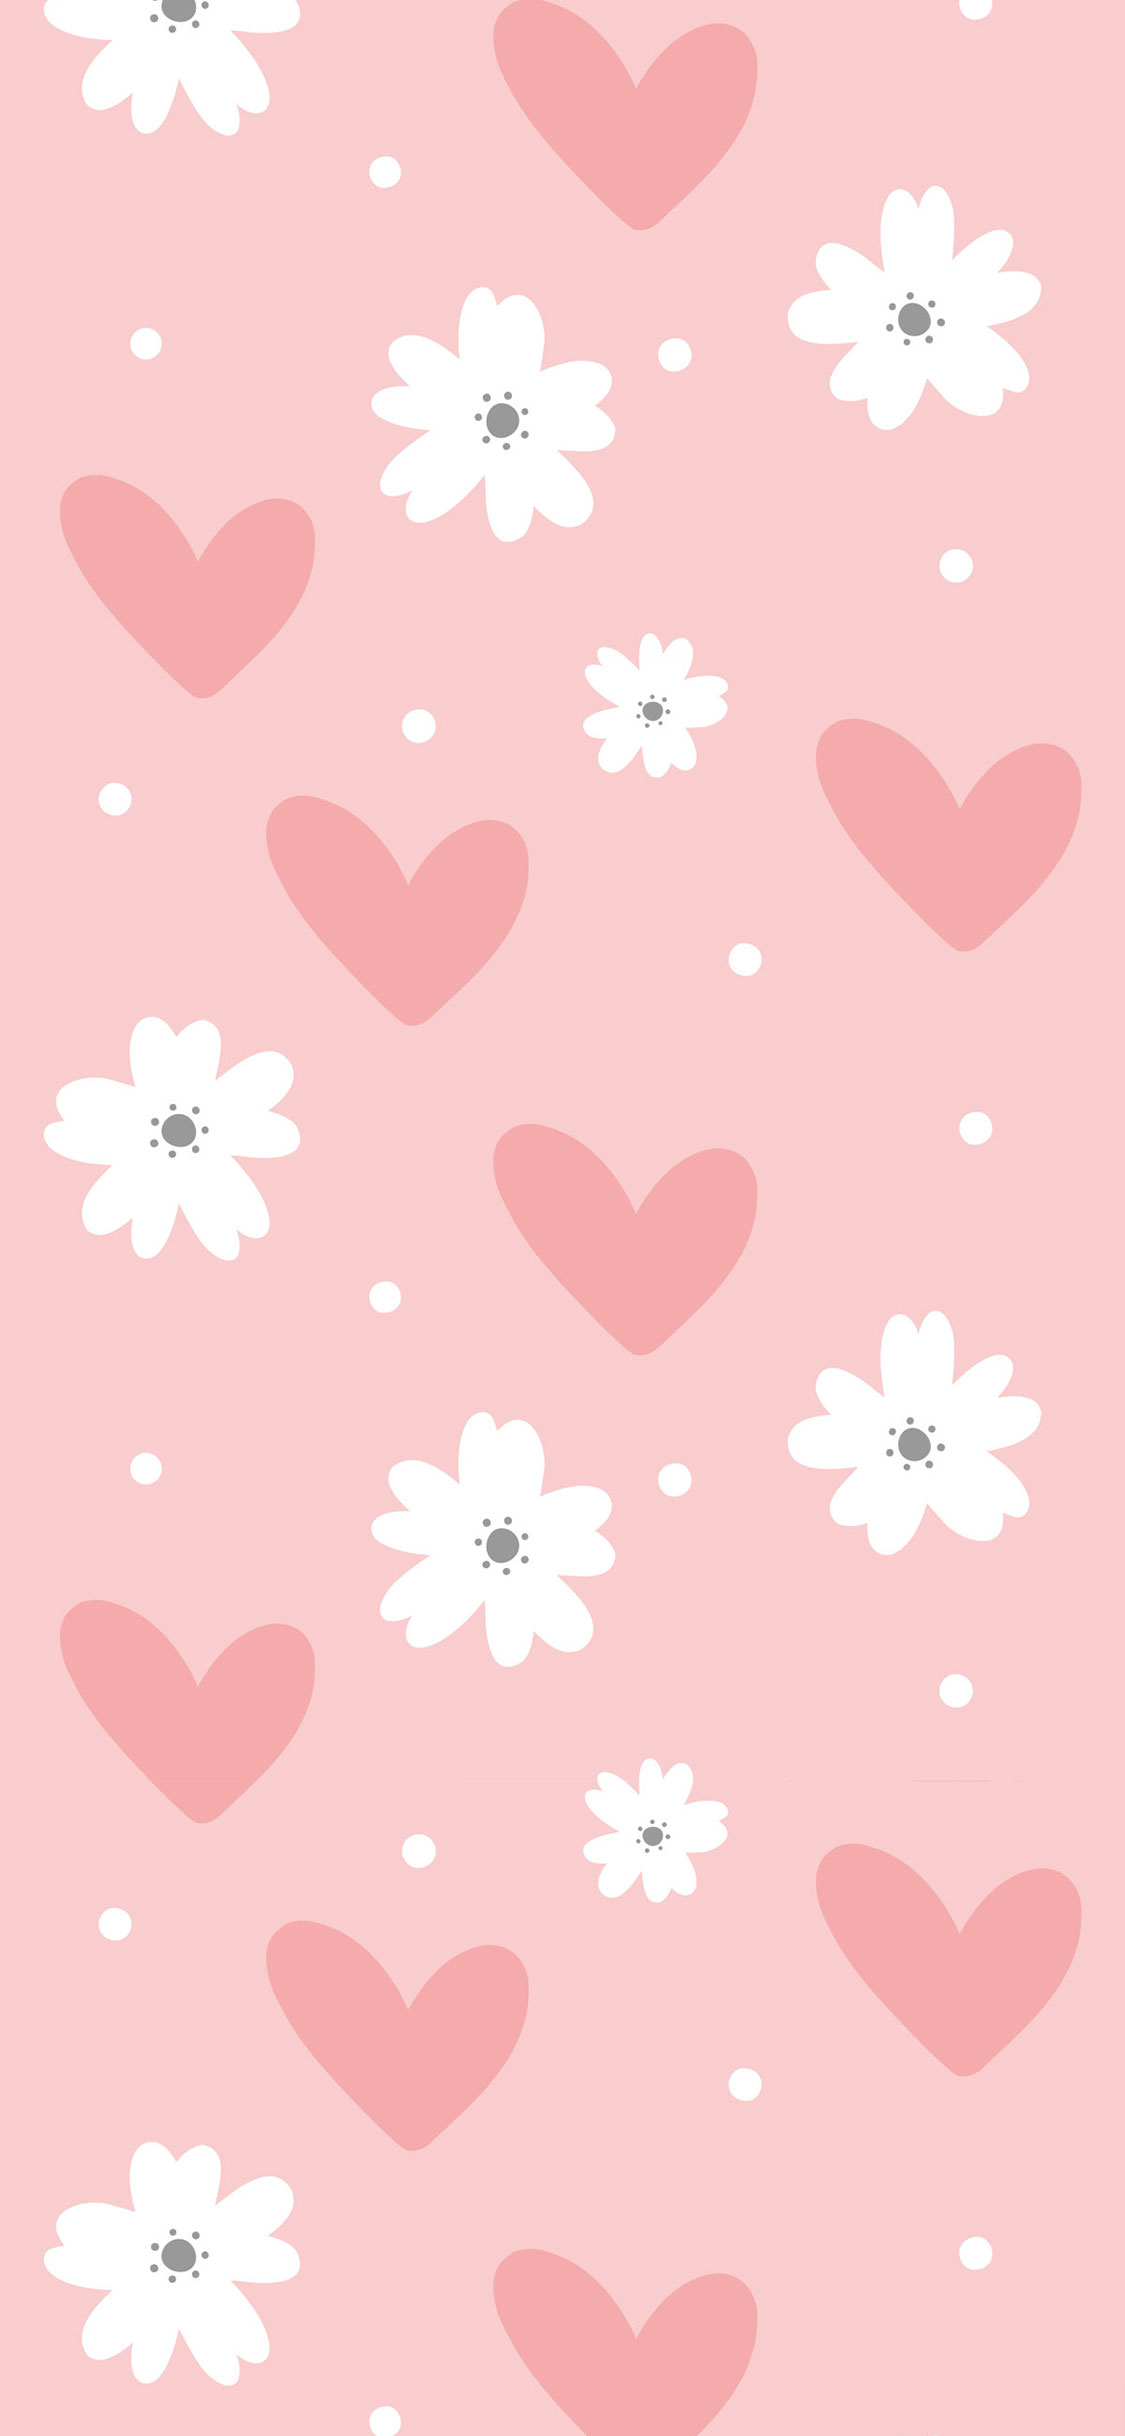 31 Hd Girly Iphone Wallpapers For Iphone 6 6s 7 8 X Xs Xr